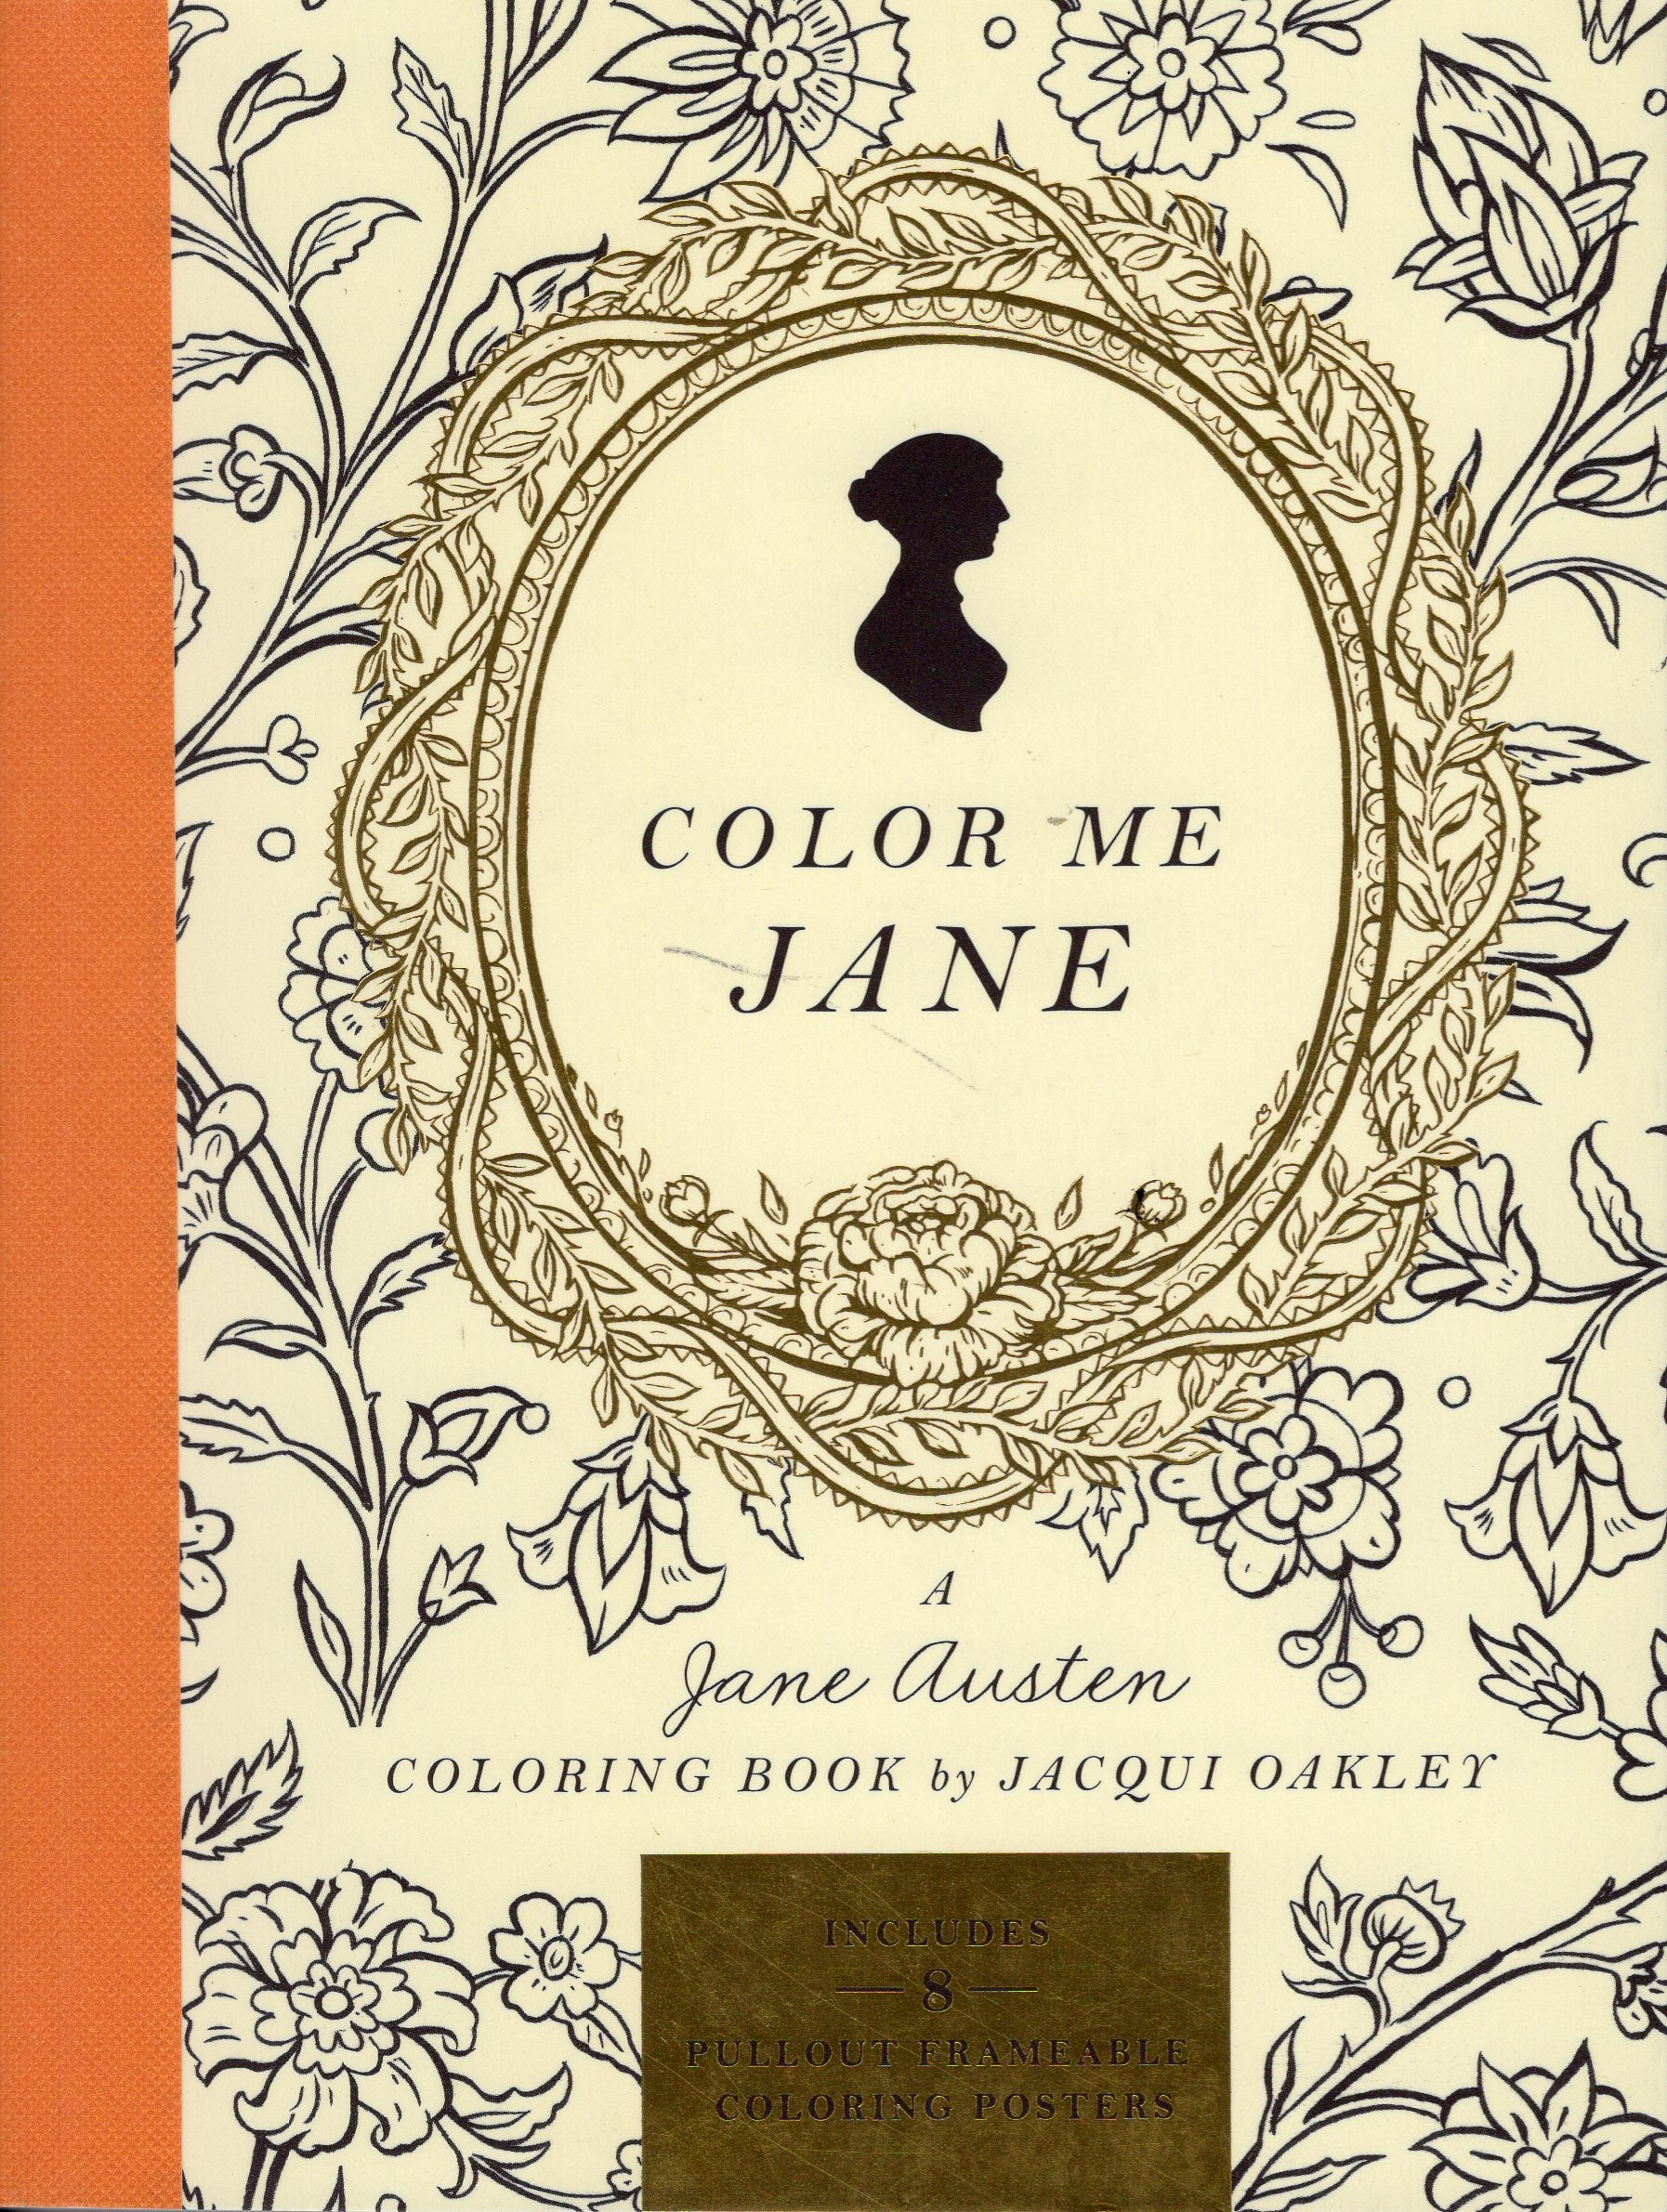 COLOR ME JANE: A Jane Austen Coloring Book – The Marble Faun Books ...